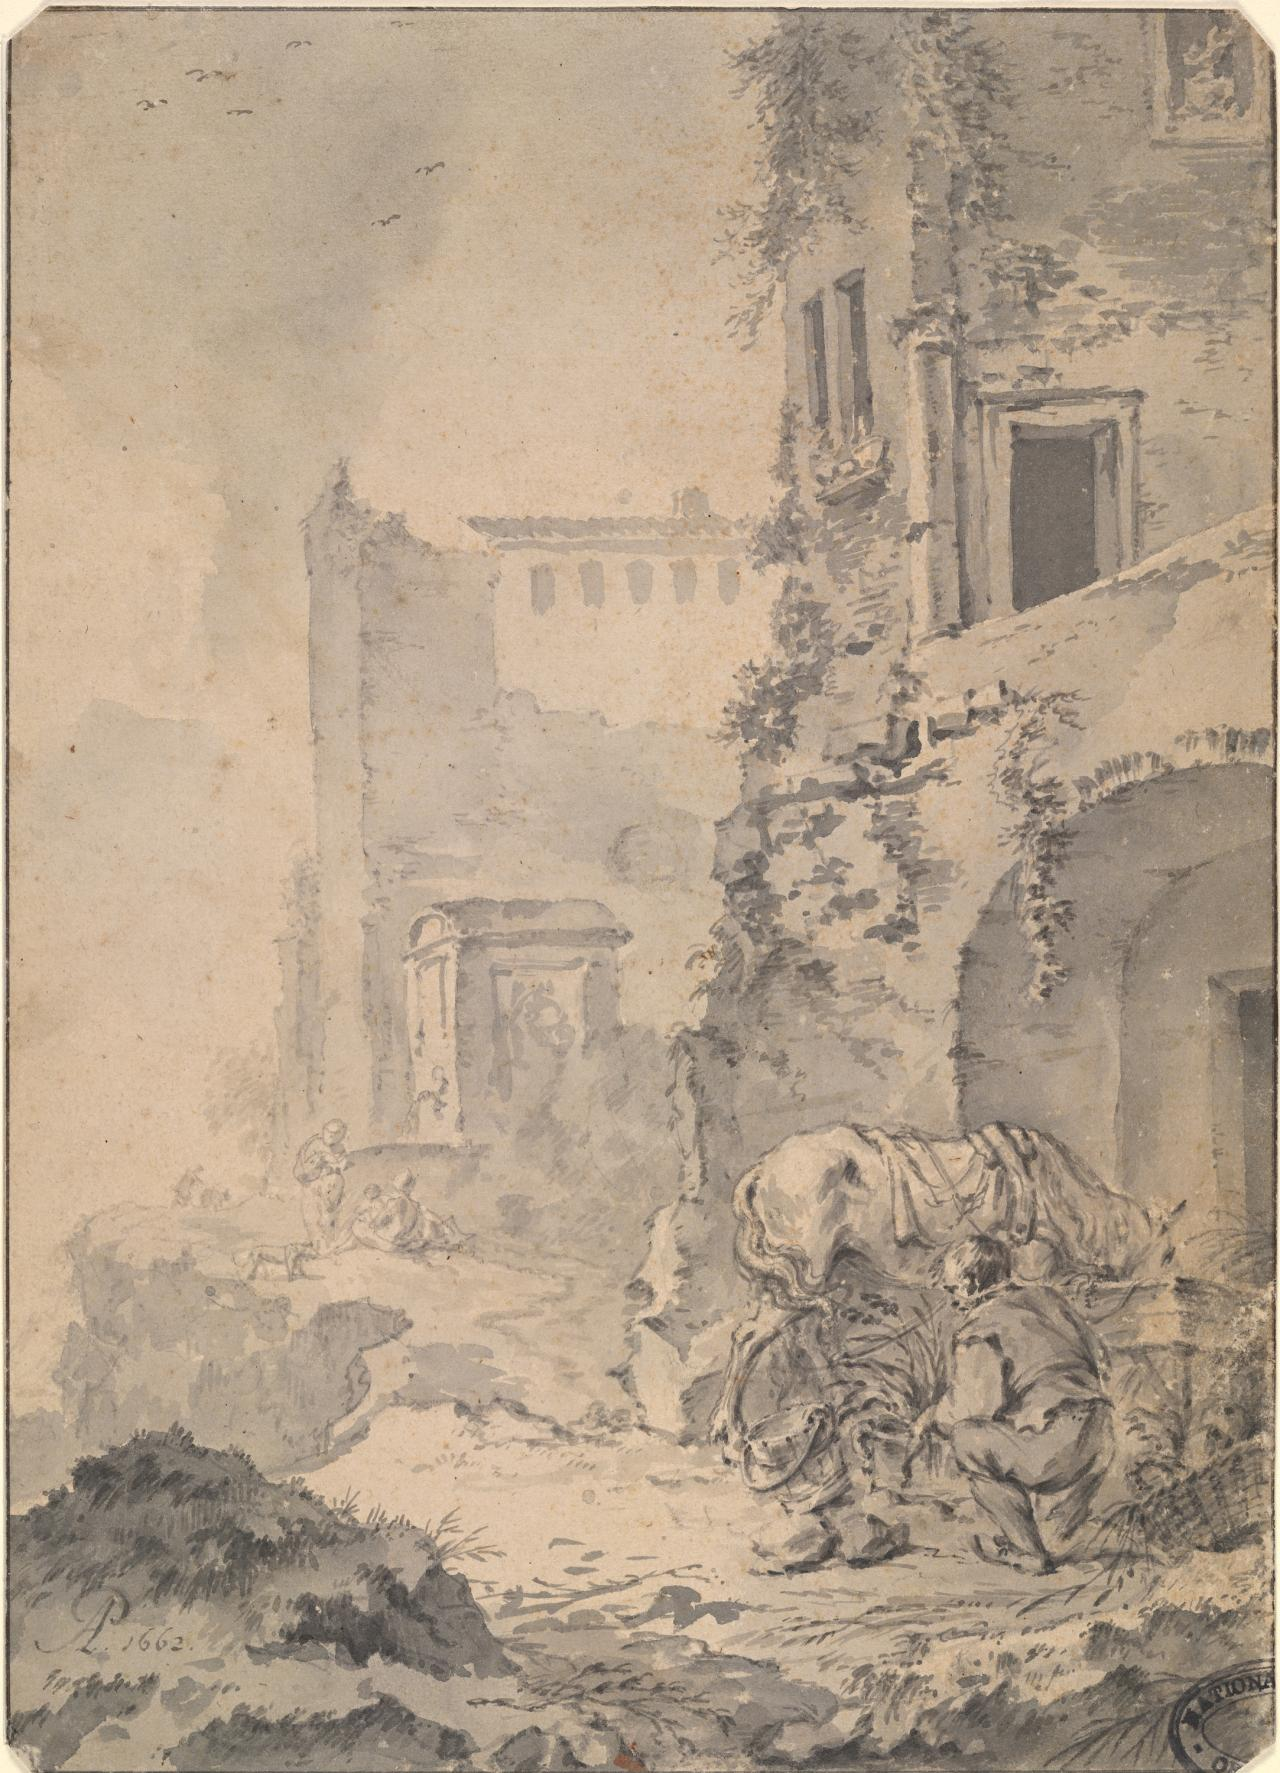 Italianate ruins with man and horse in foreground